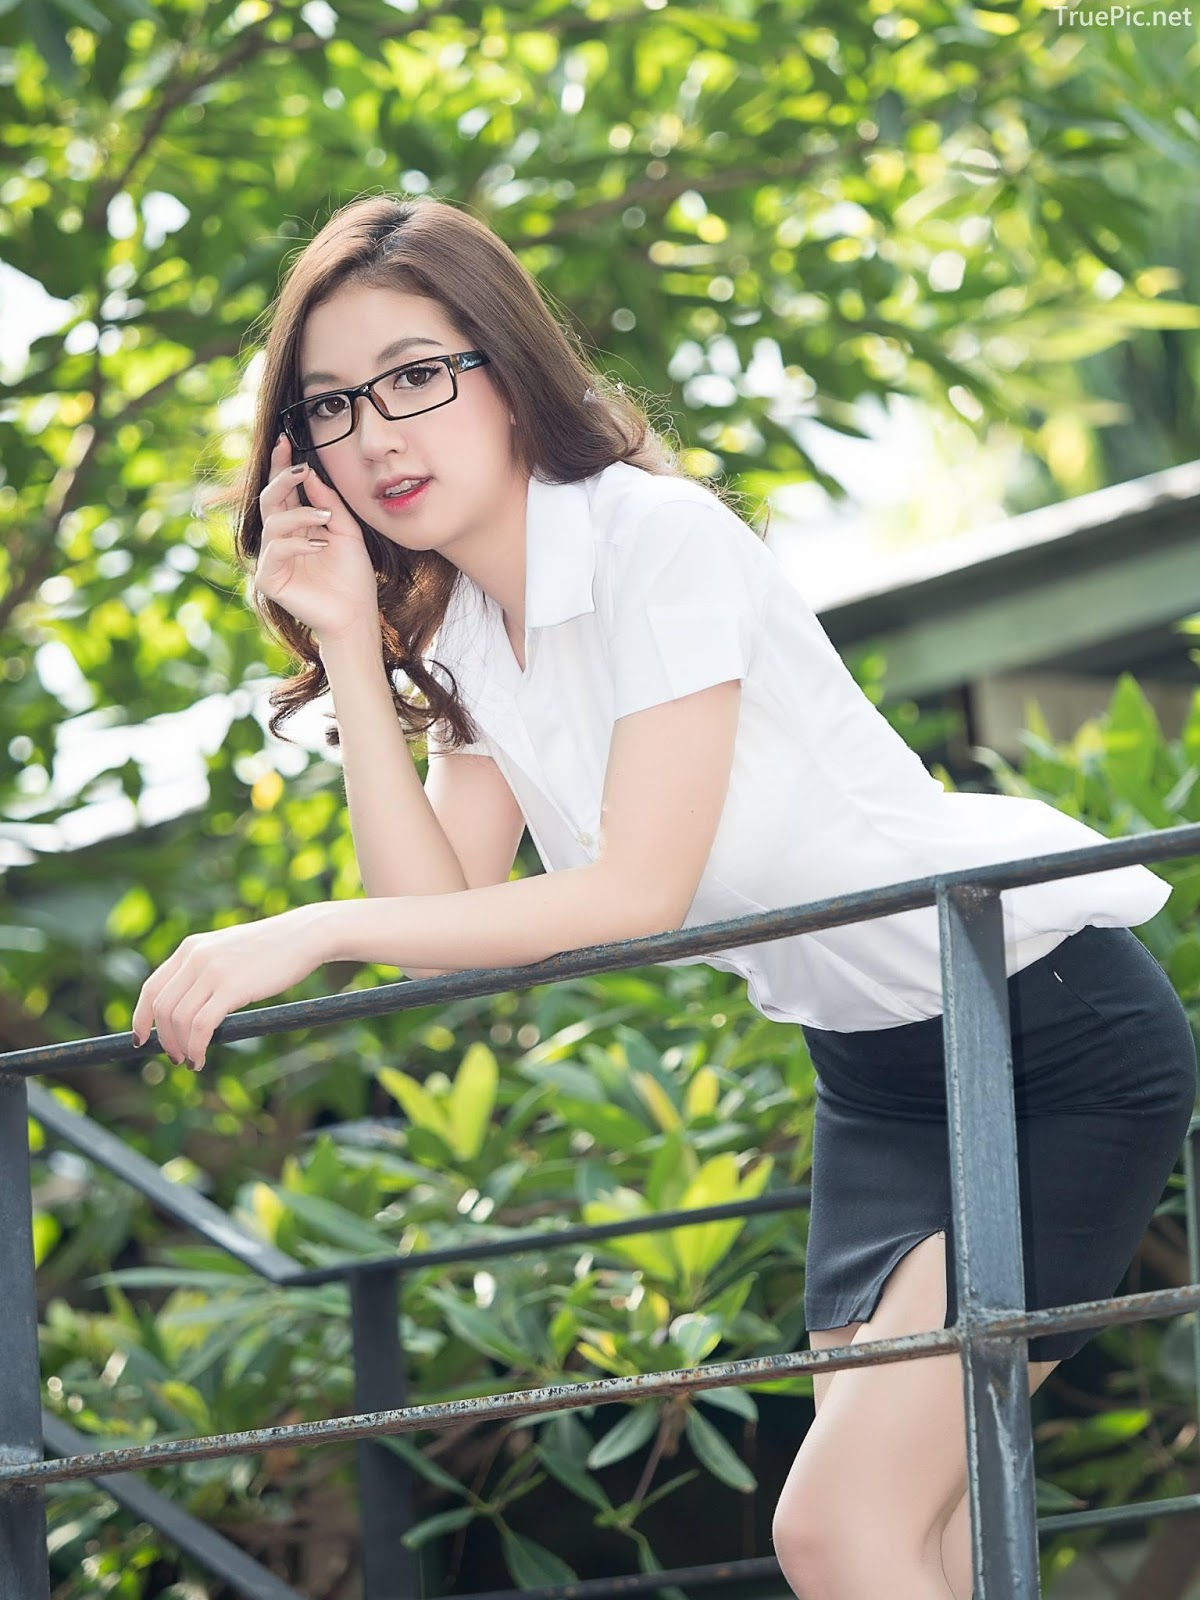 Thailand model - Yingaon Duangporn - Concept The Beautiful Office Girl - Picture 2